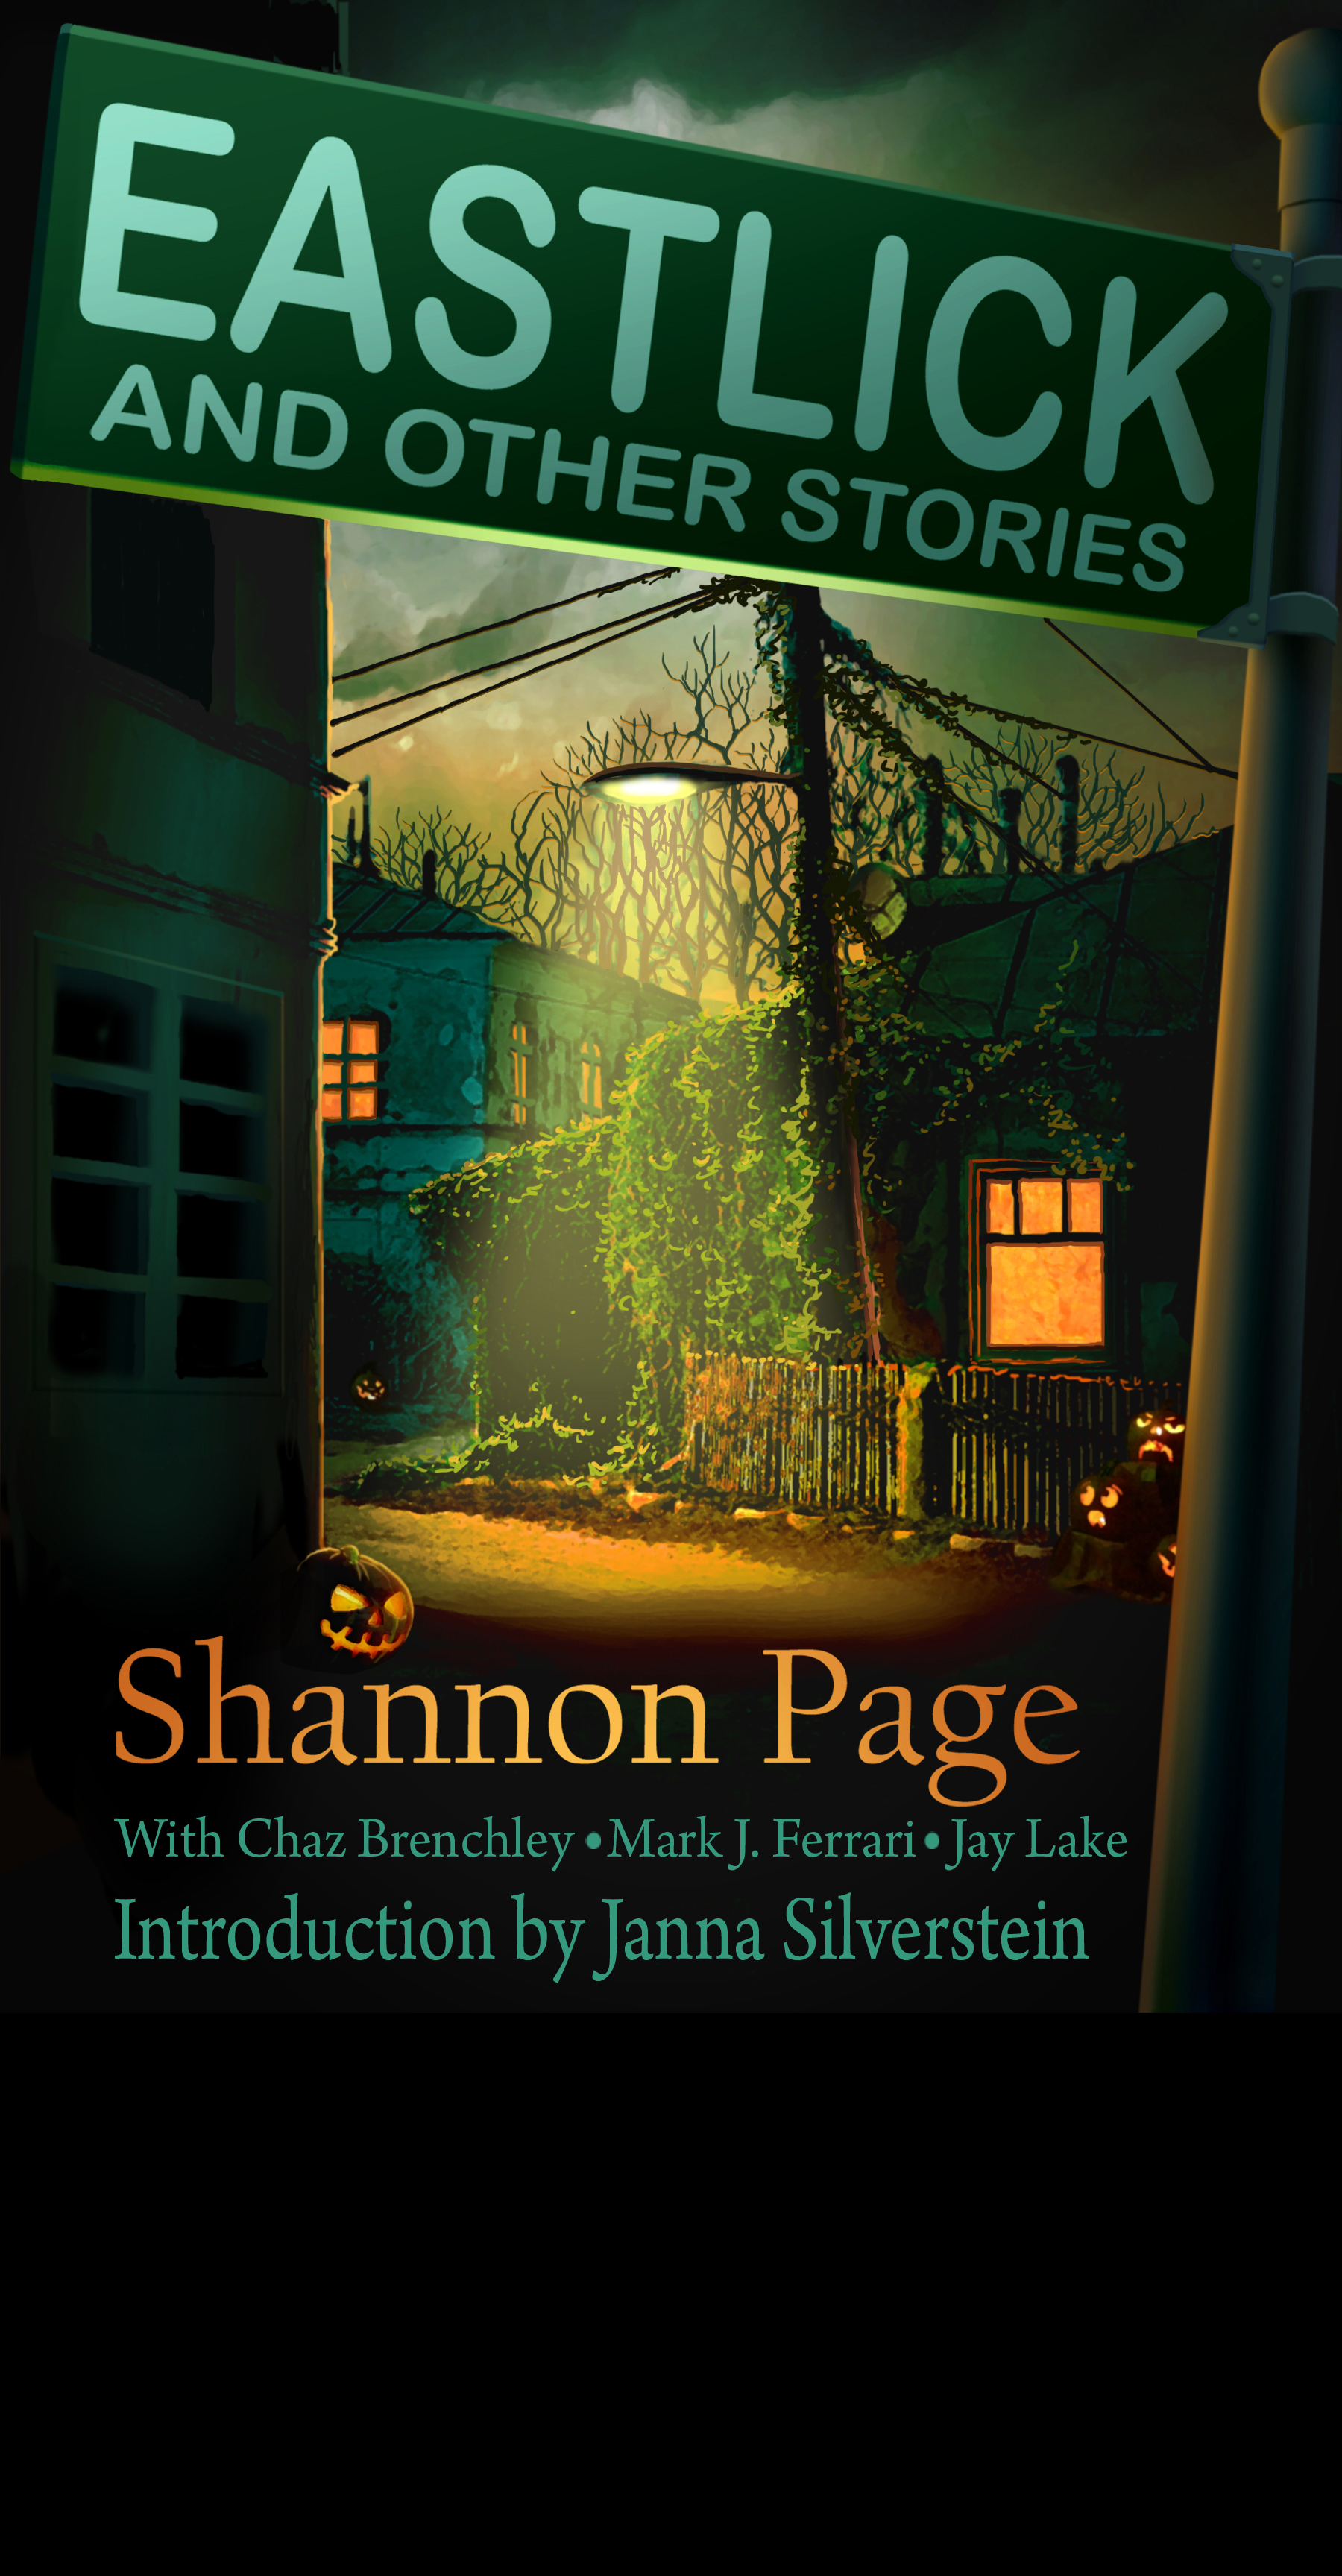 "Eastlick And Other Stories - This collection gathers 14 of Shannon Page's short stories previous published in other anthologies. Mark collaborated with her on three of them: ""Night Without Darkness,"" ""Oh Give Me Land, Lots of Land, Under Starry Skies Above,"" and ""Mad Gus Missteps."""